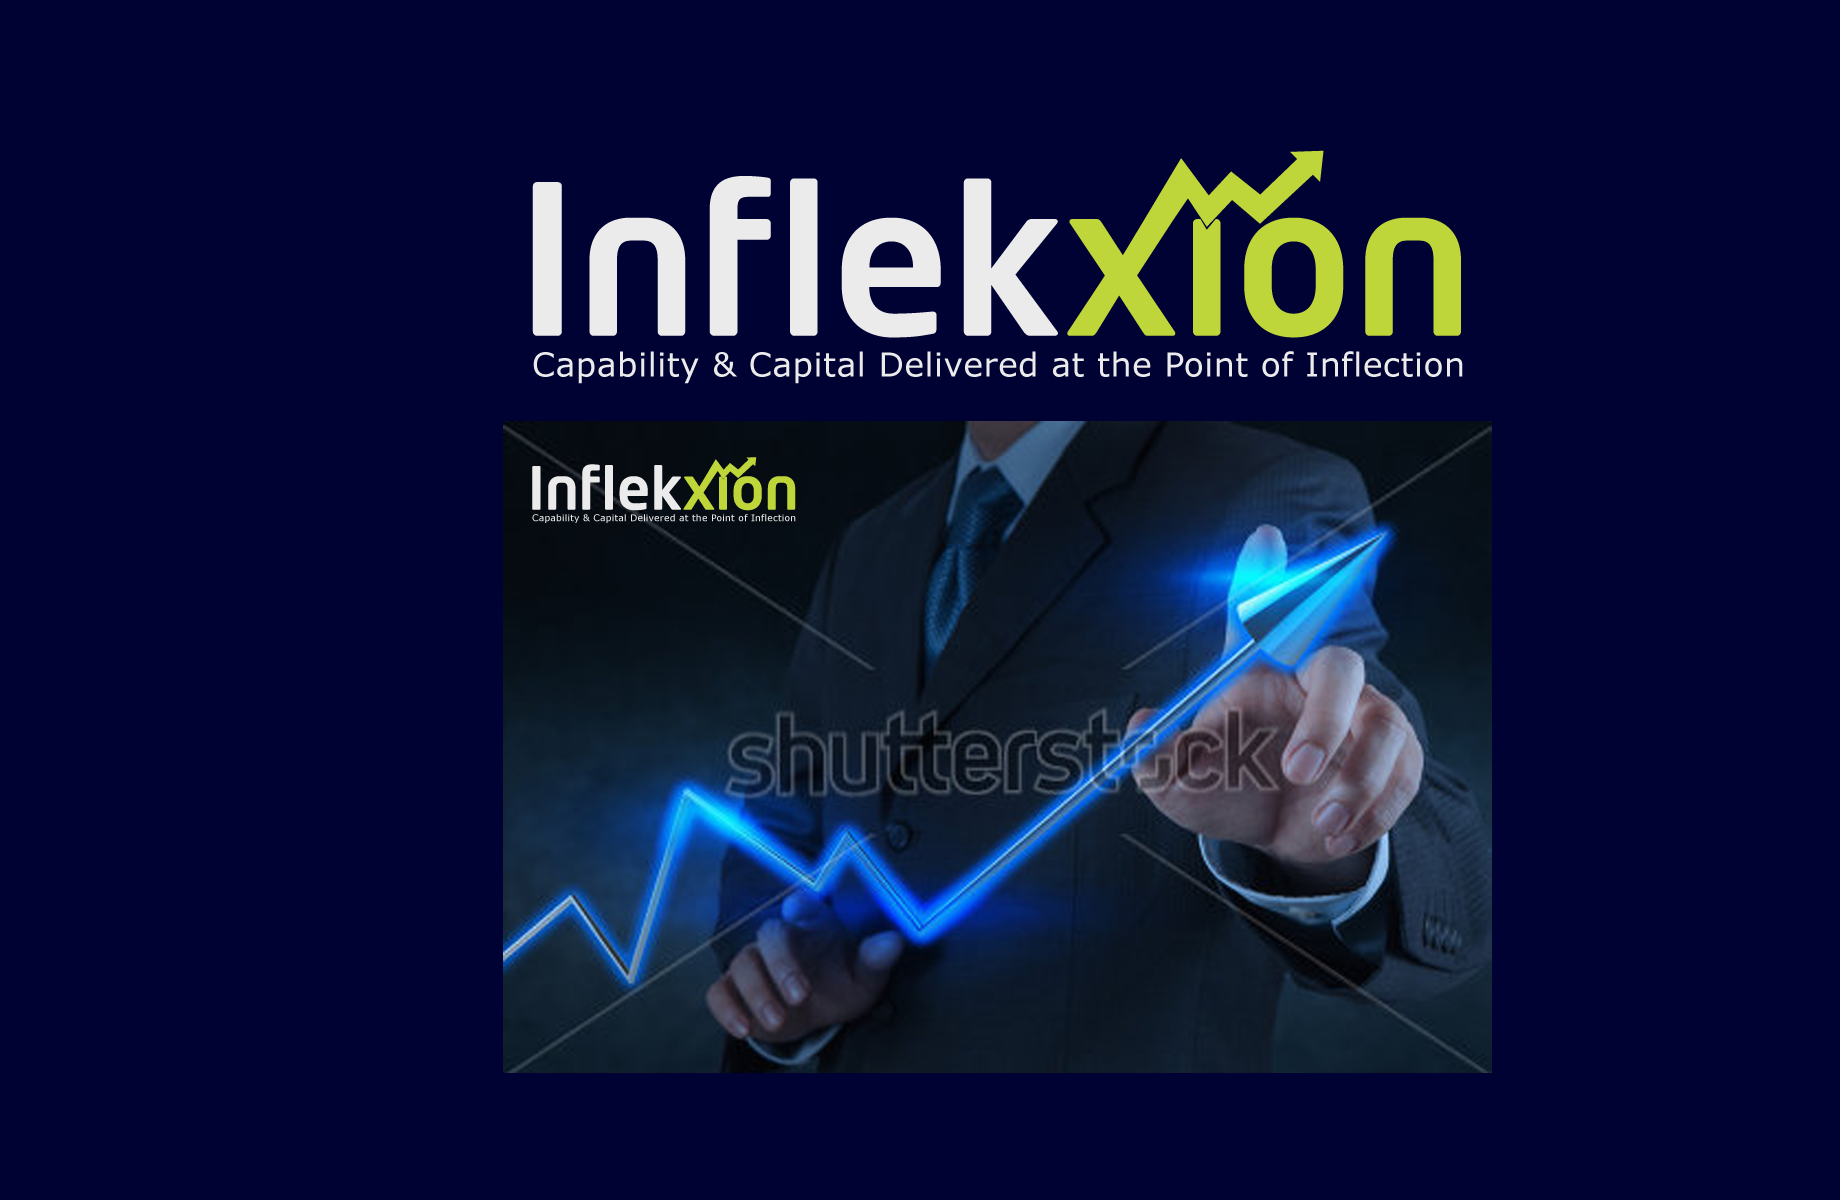 Logo Design by Jan Chua - Entry No. 94 in the Logo Design Contest Professional Logo Design for Inflekxion.